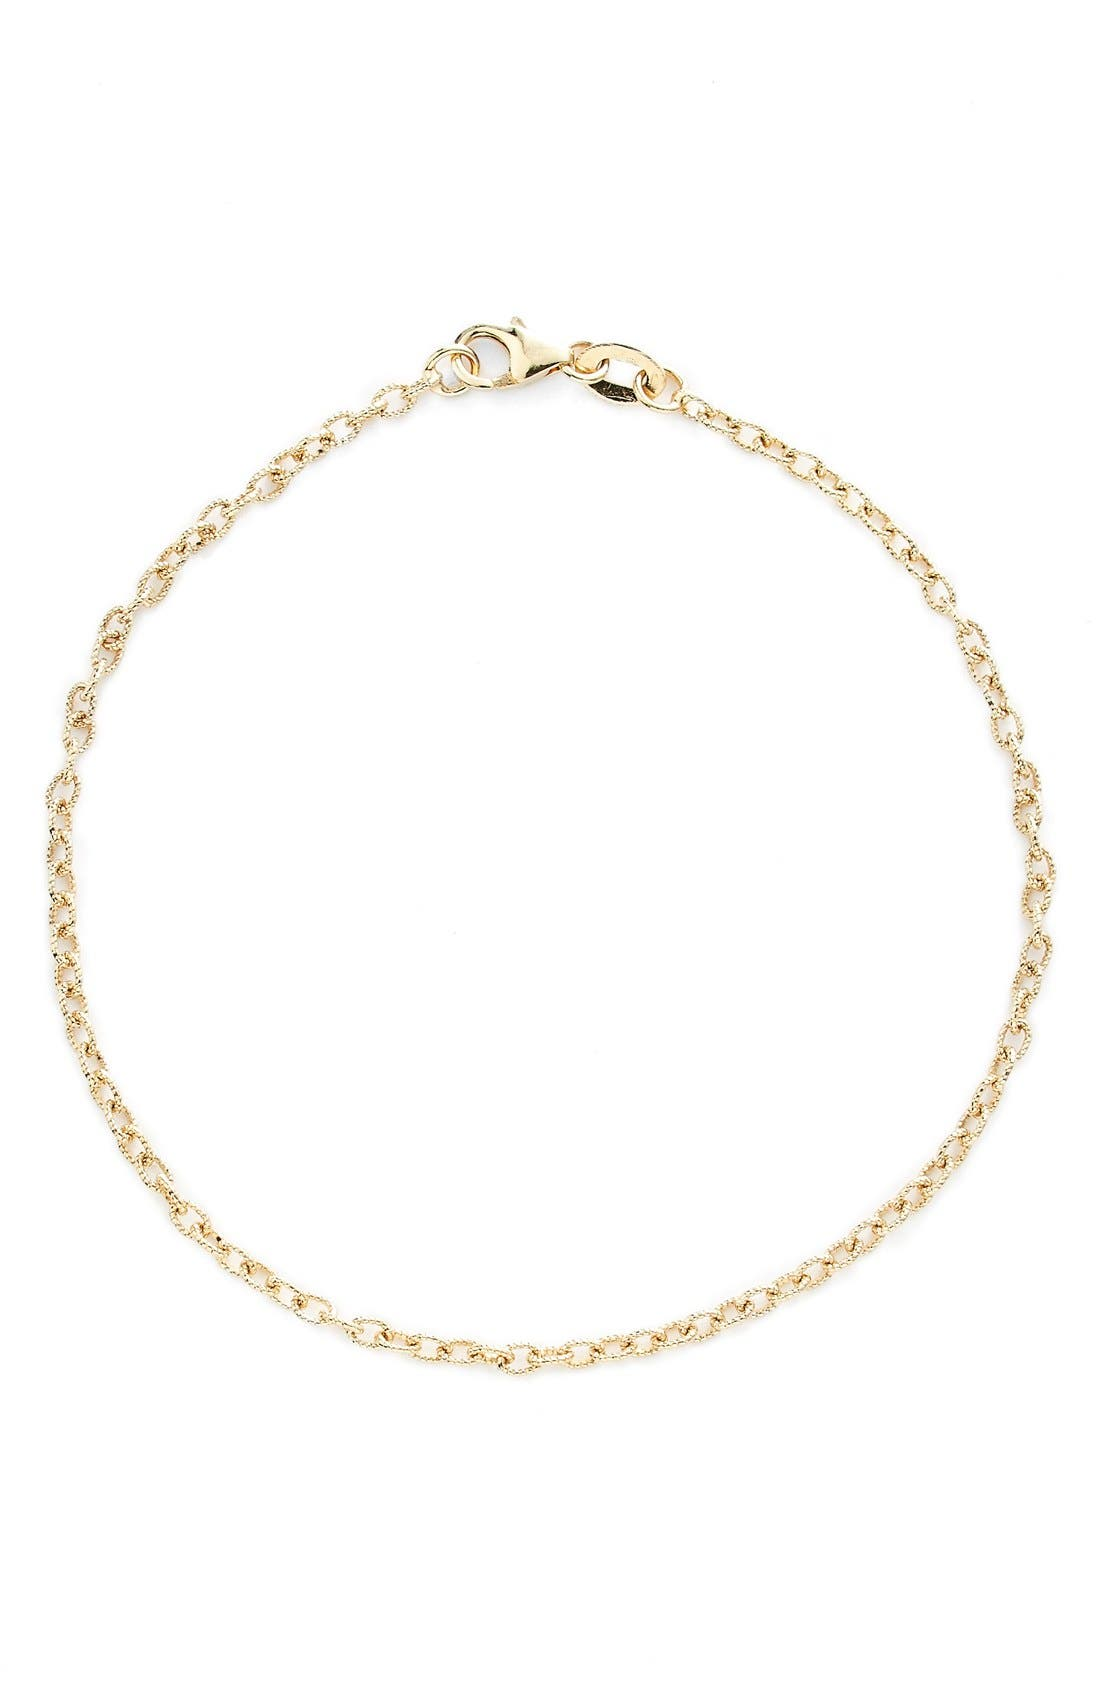 Etched Link Bracelet,                         Main,                         color, Yellow Gold